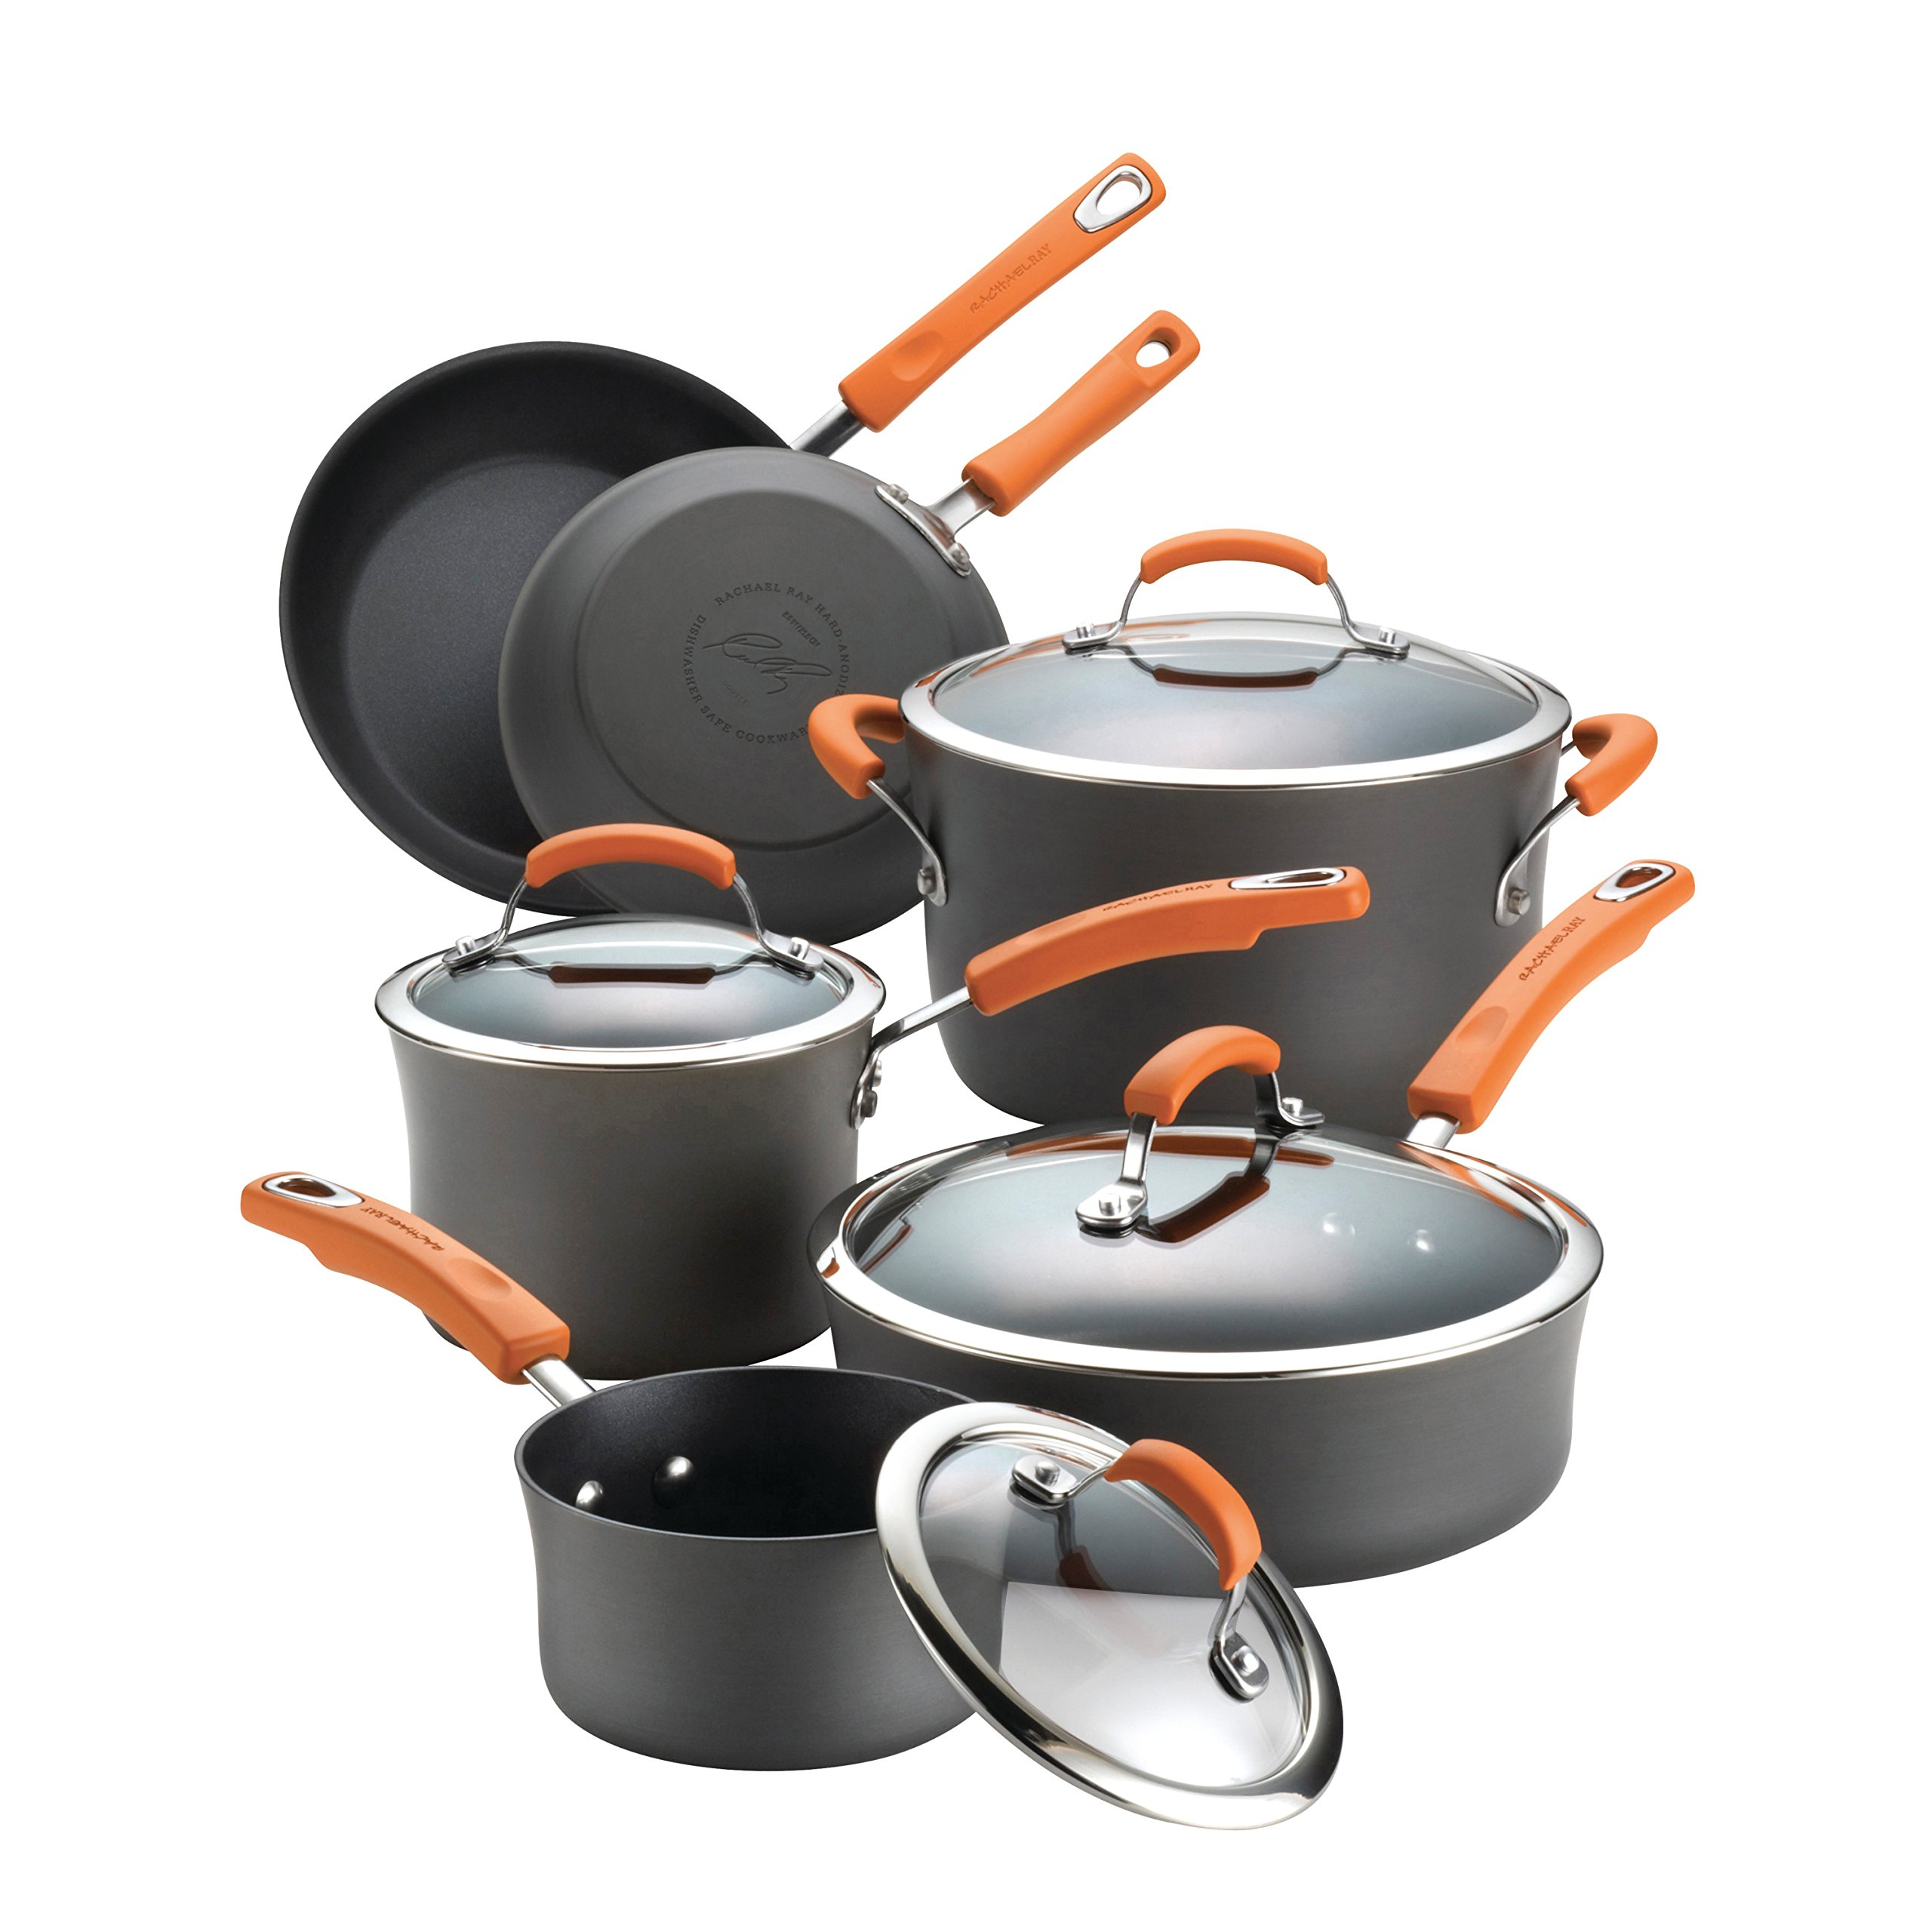 Rachael Ray Hard Anodized II Nonstick Dishwasher Safe 10-Piece Cookware Set, Orange by Rachael Ray (Image #1)